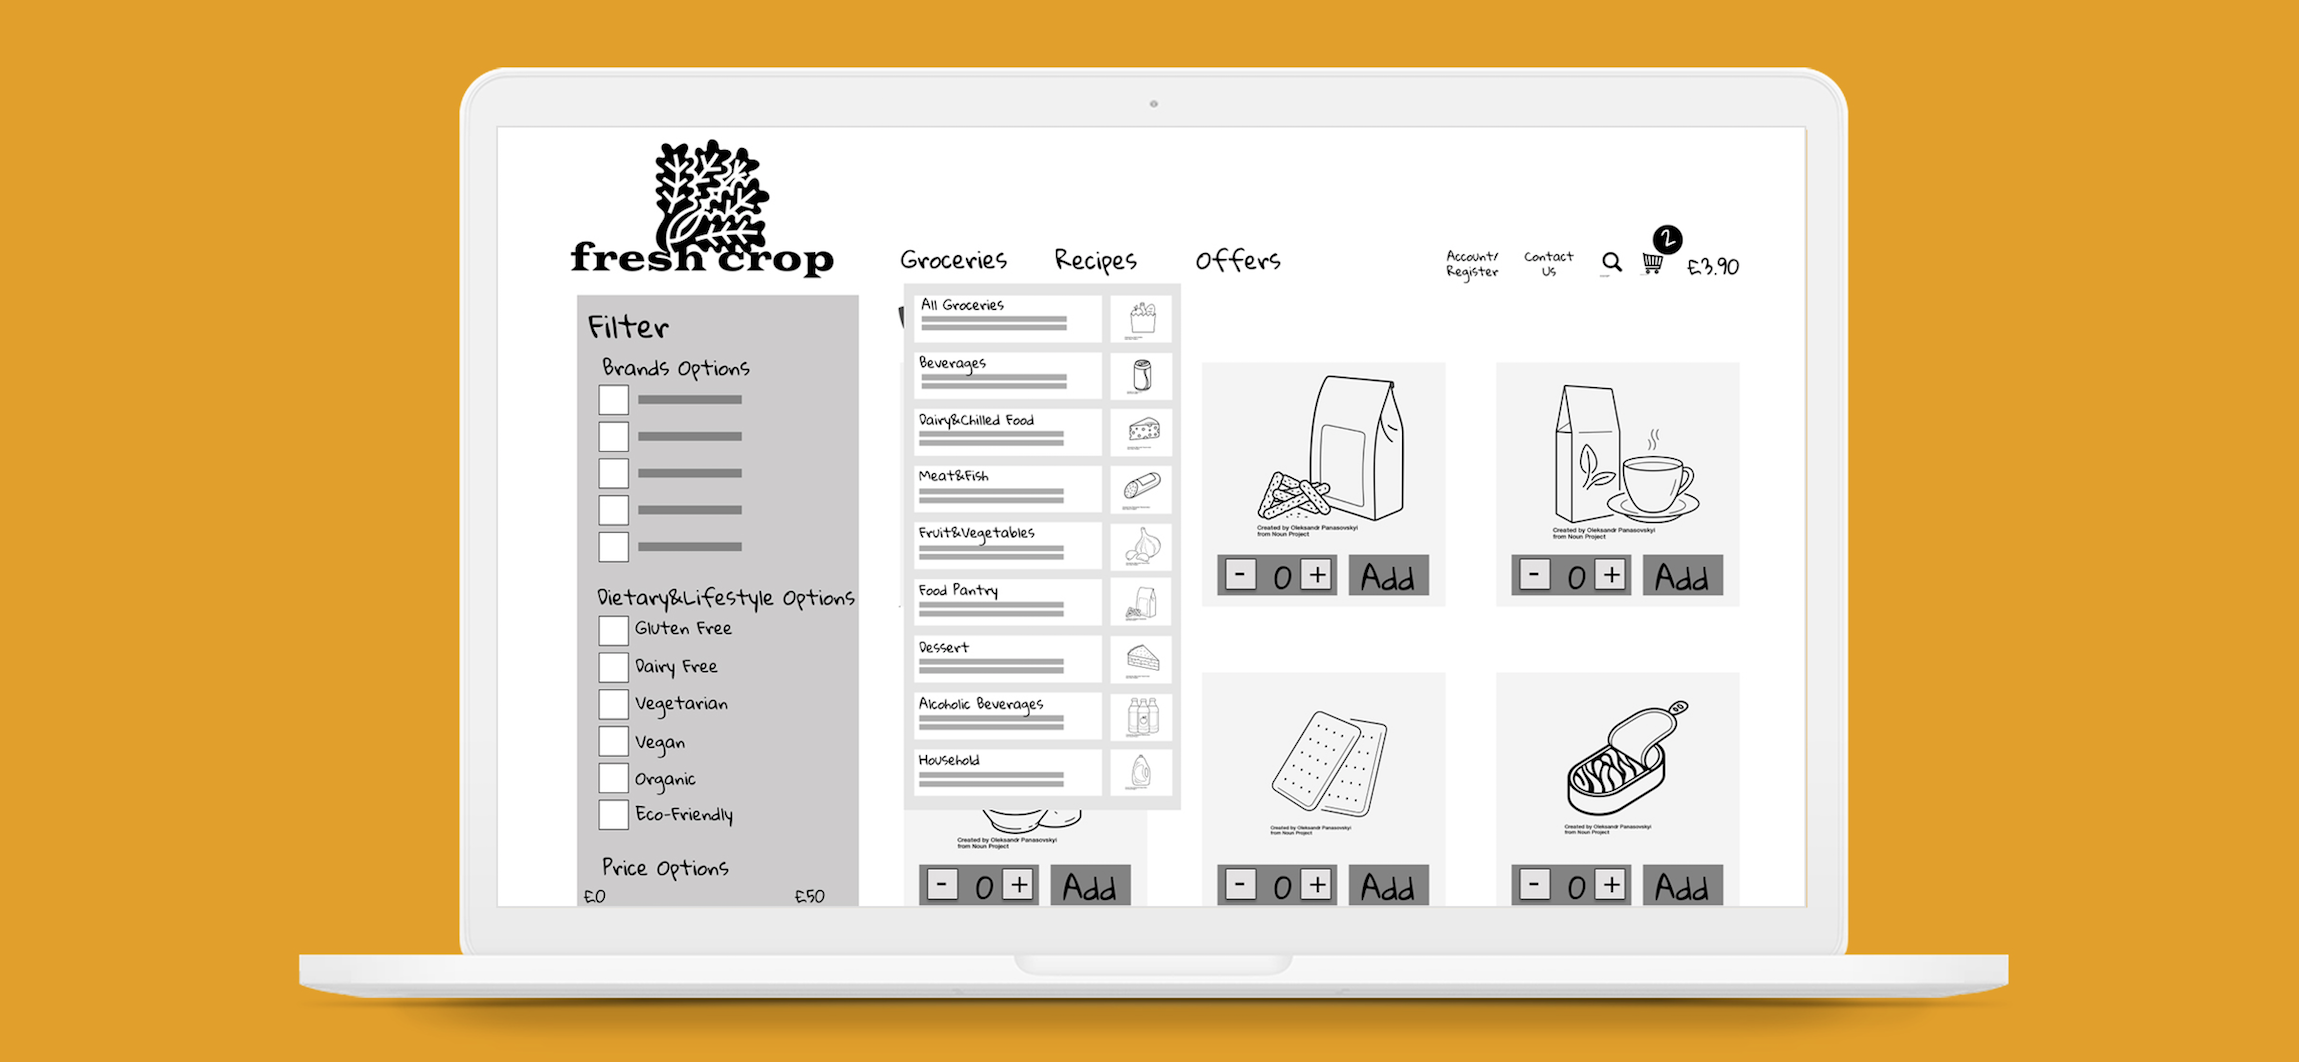 The Hero Image showing a mock-up laptop with the product page of the mid fidelity website.